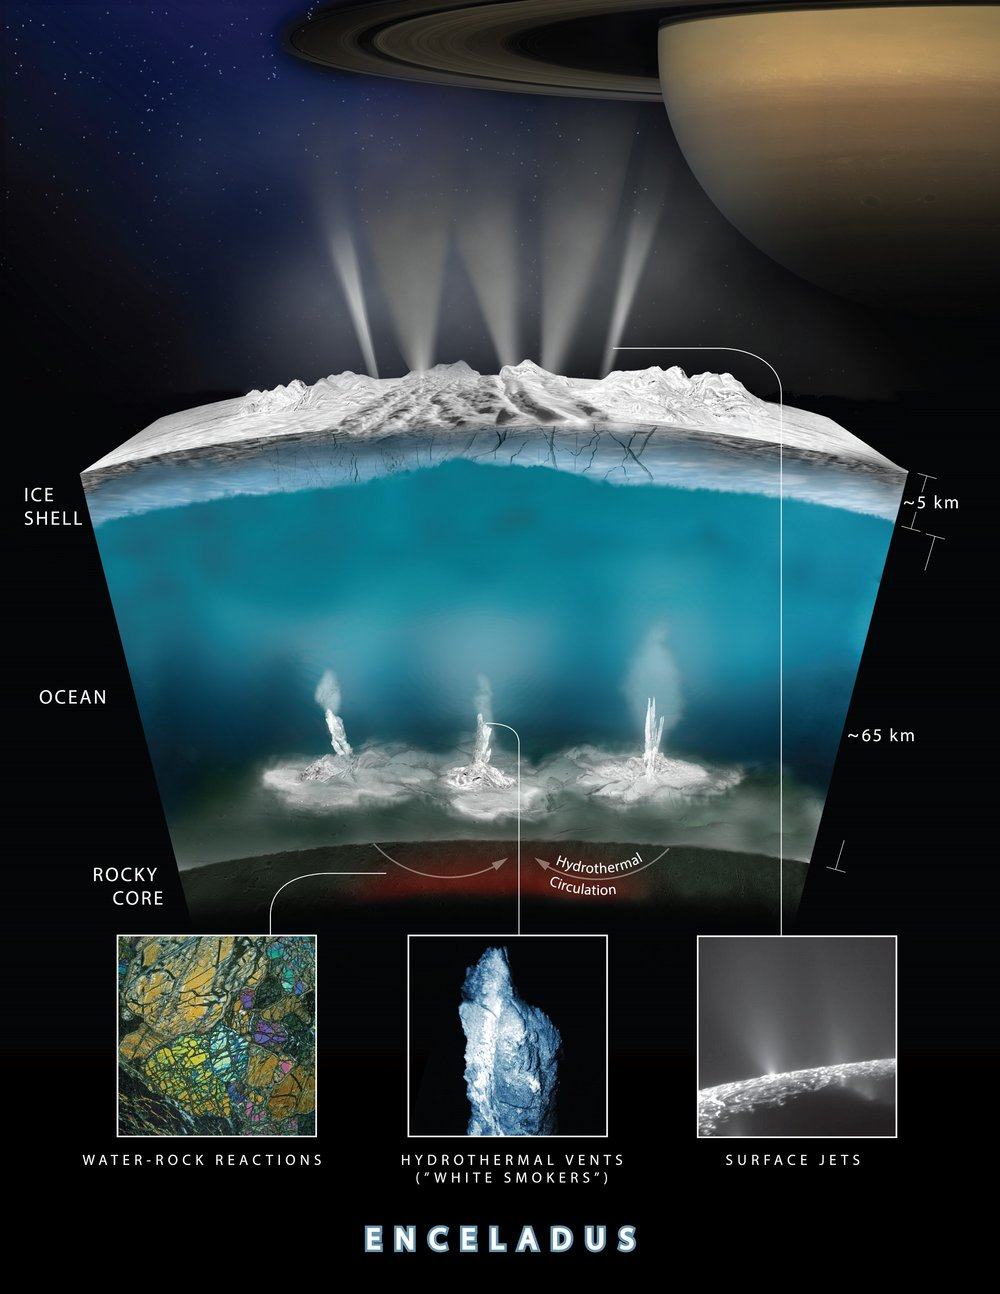 Artist rendering showing an interior cross-section of the crust of Enceladus, which shows how hydrothermal activity may be causing the plumes of water at the moon's surface. - Image Credits: NASA-GSFC/SVS, NASA/JPL-Caltech/Southwest Research Institute